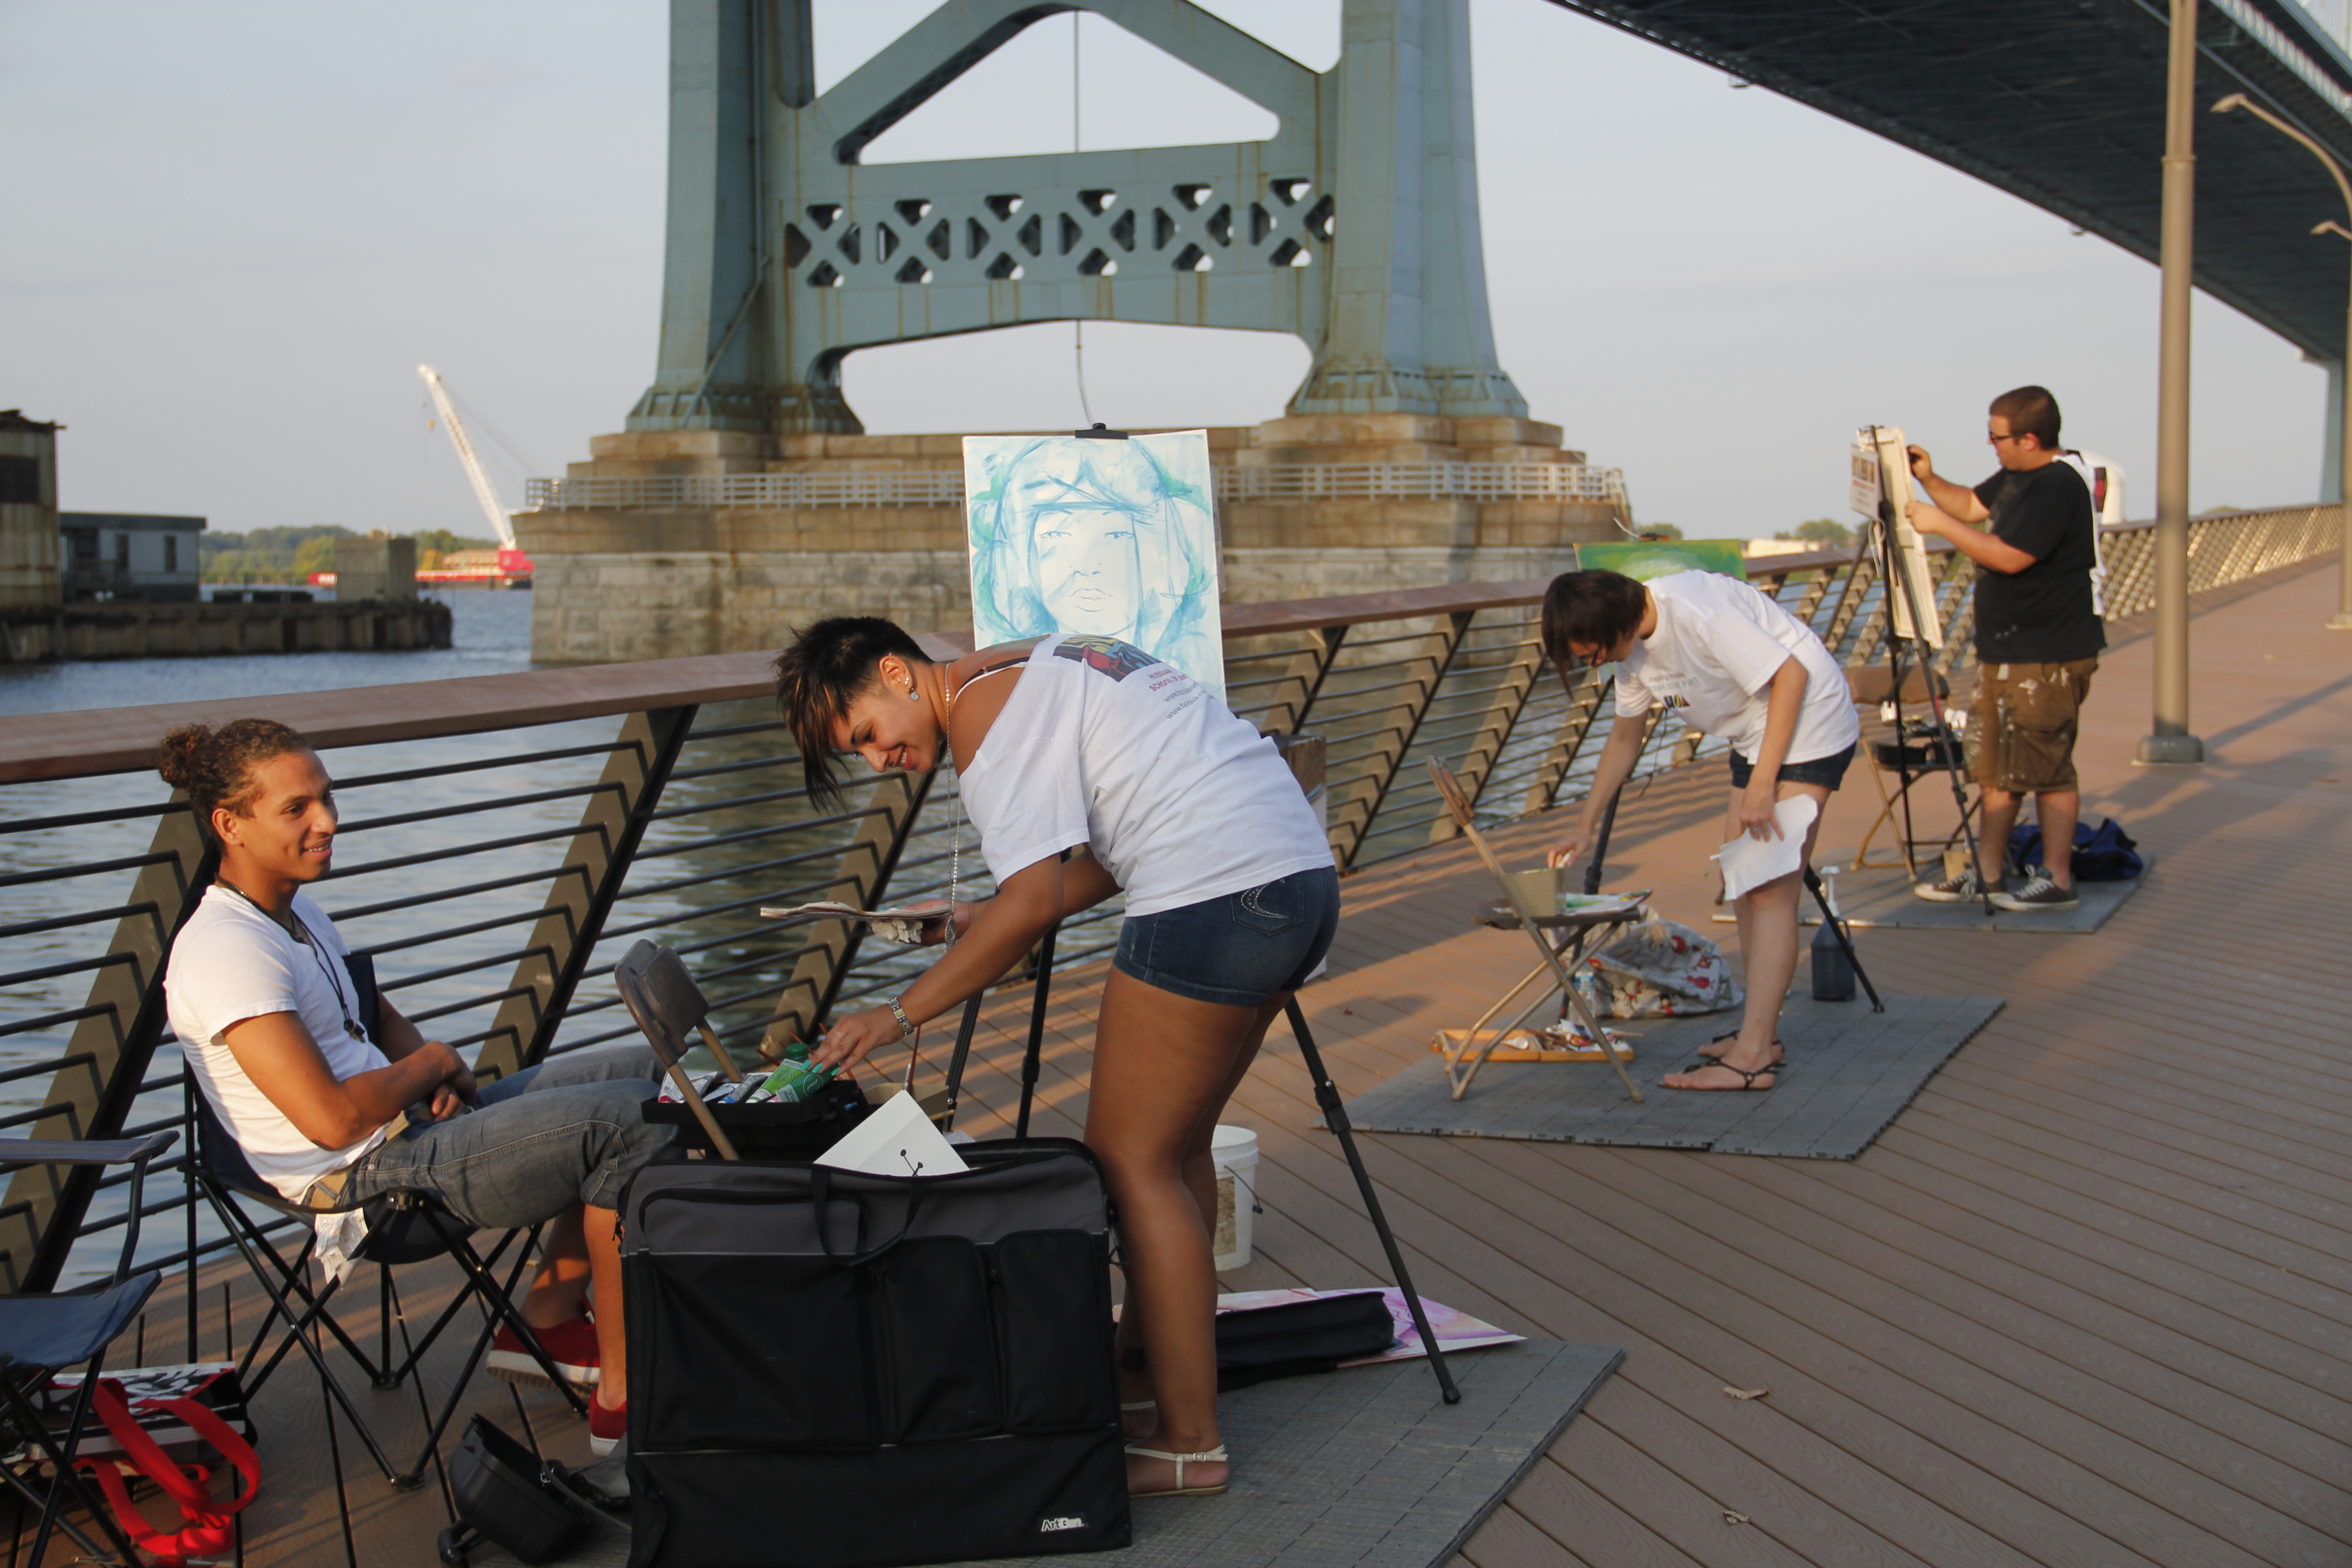 Catching up with food and tunes at First Friday on Race Street Pier